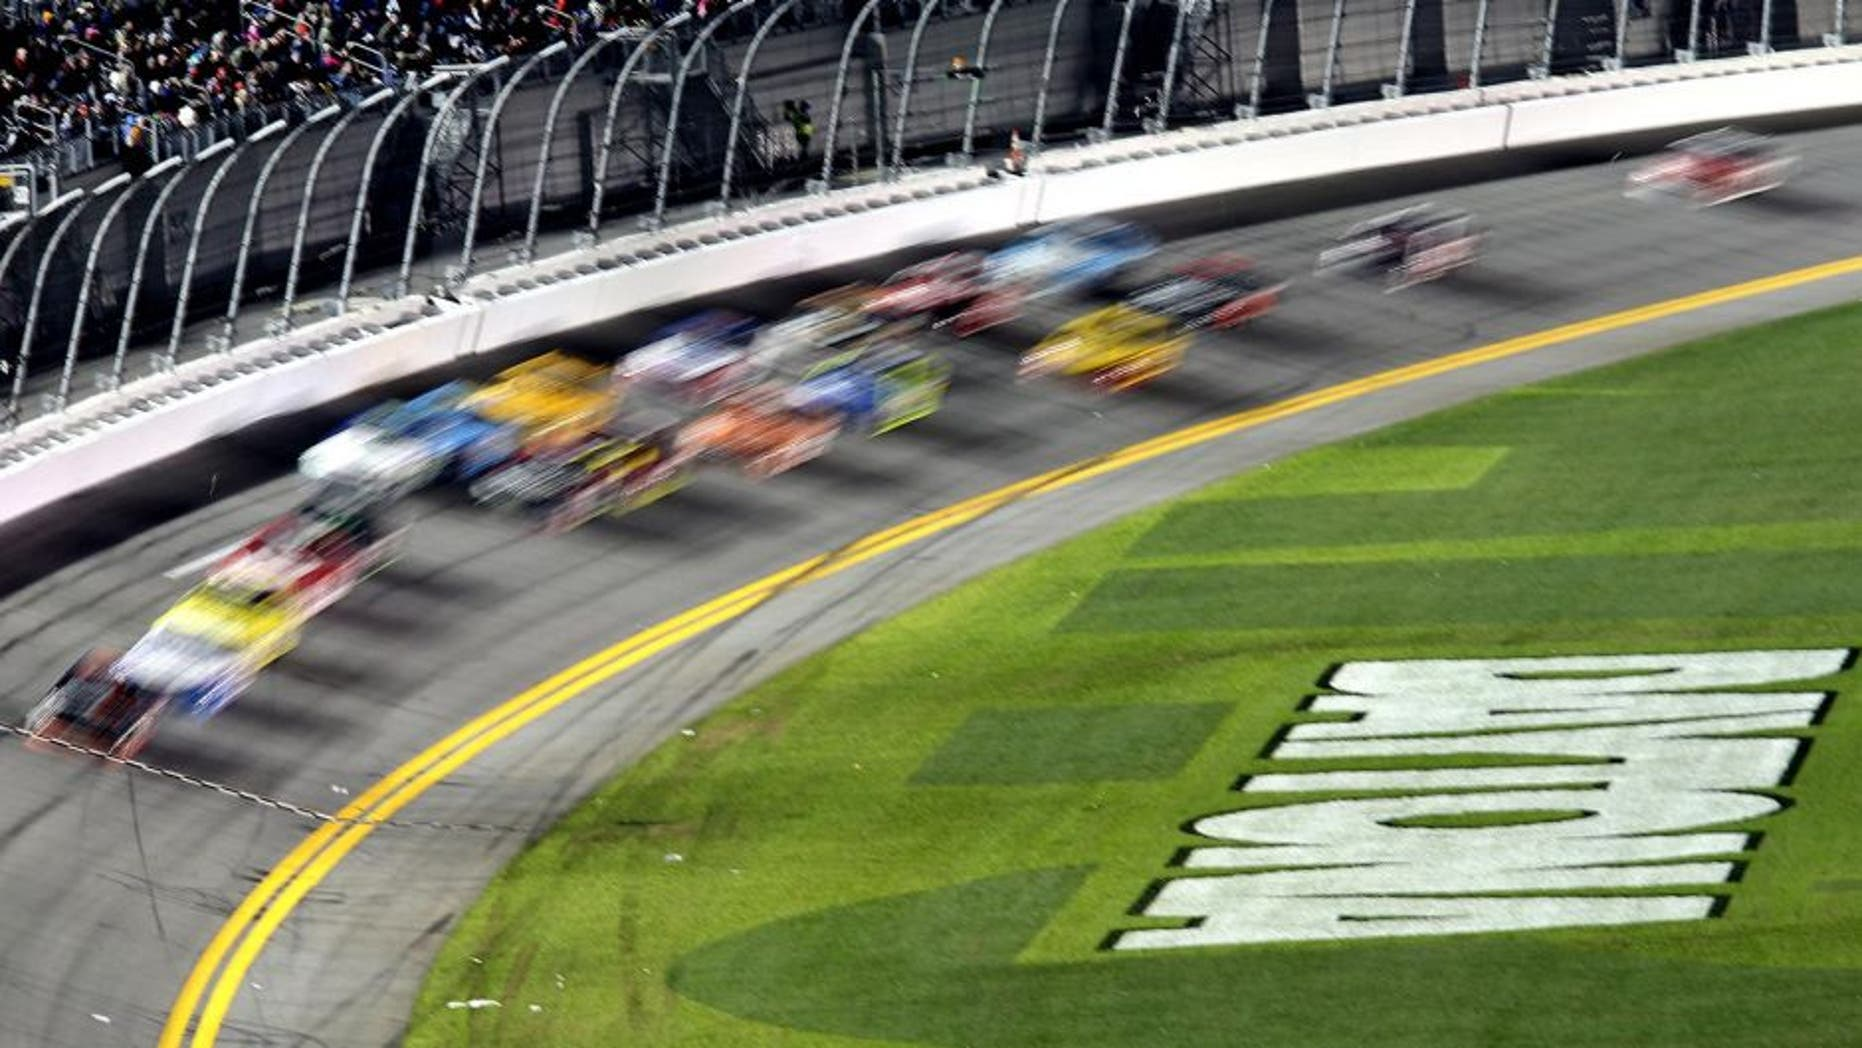 DAYTONA BEACH, FL - FEBRUARY 13: A general view of action during the NASCAR Sprint Cup Series Sprint Unlimited at Daytona International Speedway on February 13, 2016 in Daytona Beach, Florida. (Photo by Jerry Markland/Getty Images)